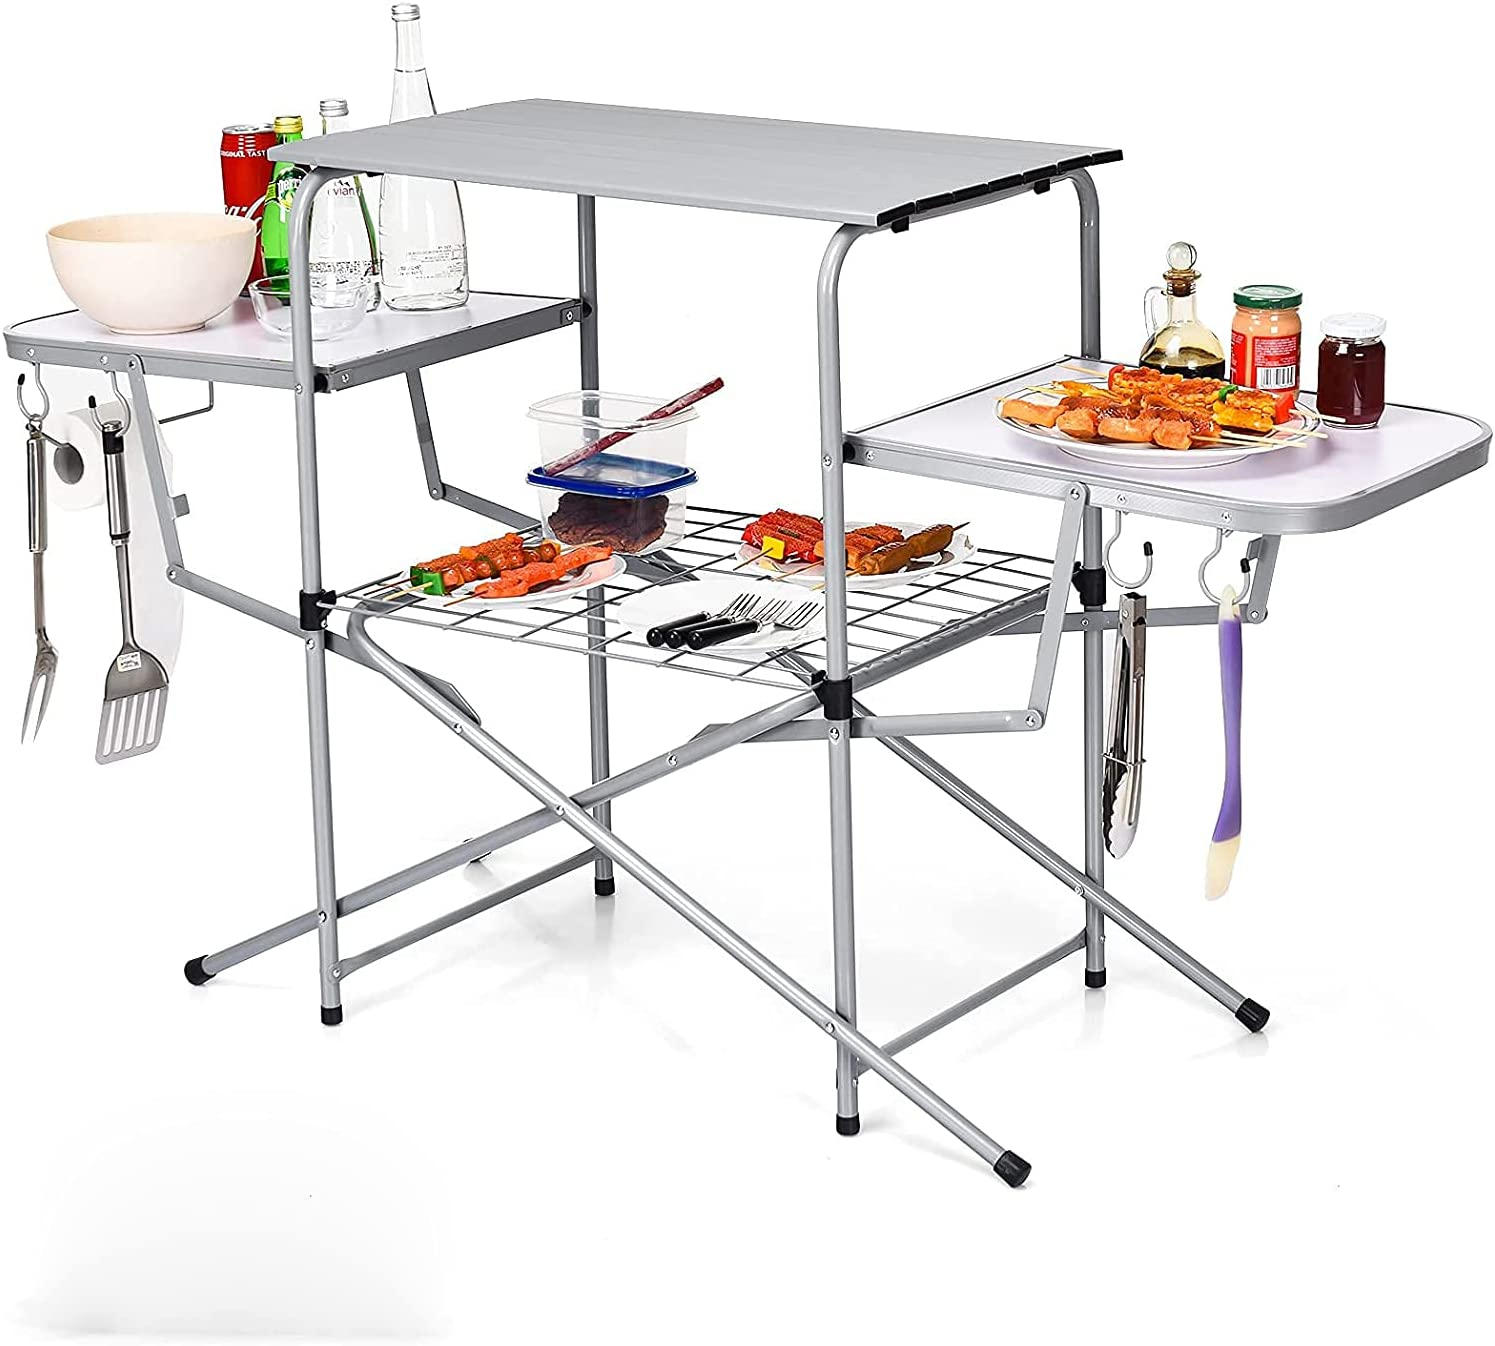 Goplus outlet Folding Grill Table Aluminum Tab Camping Rapid rise Kitchen Outdoor